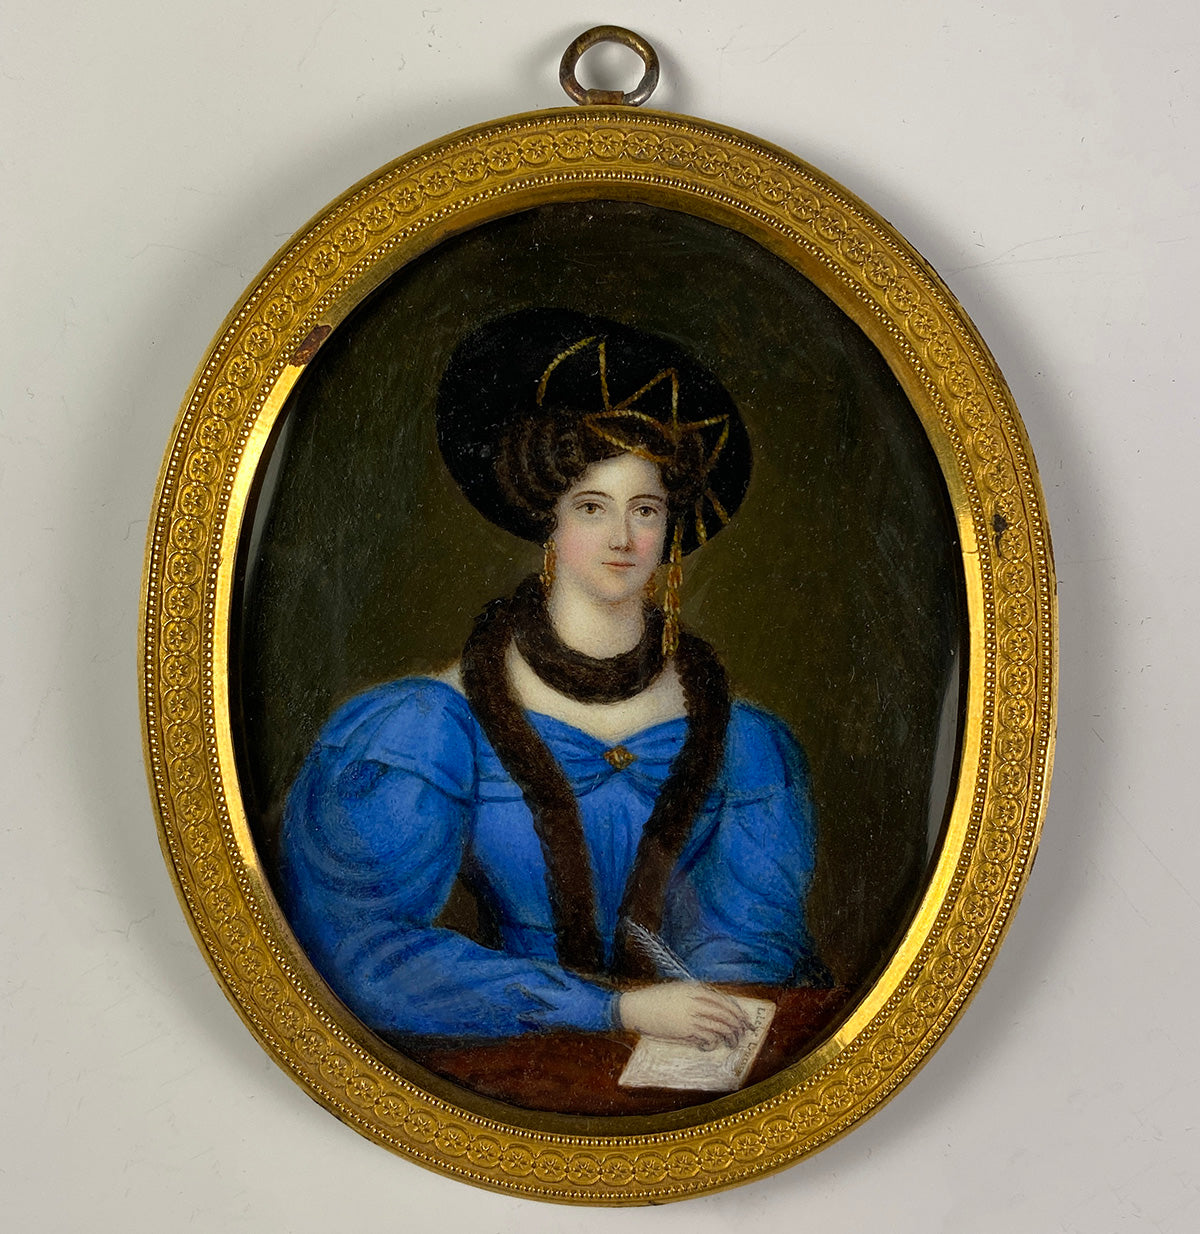 Fabulous Antique Georgian Portrait Miniature, Beautiful Lady in c.1820 High Fashion with Fur, Gigot Sleeve